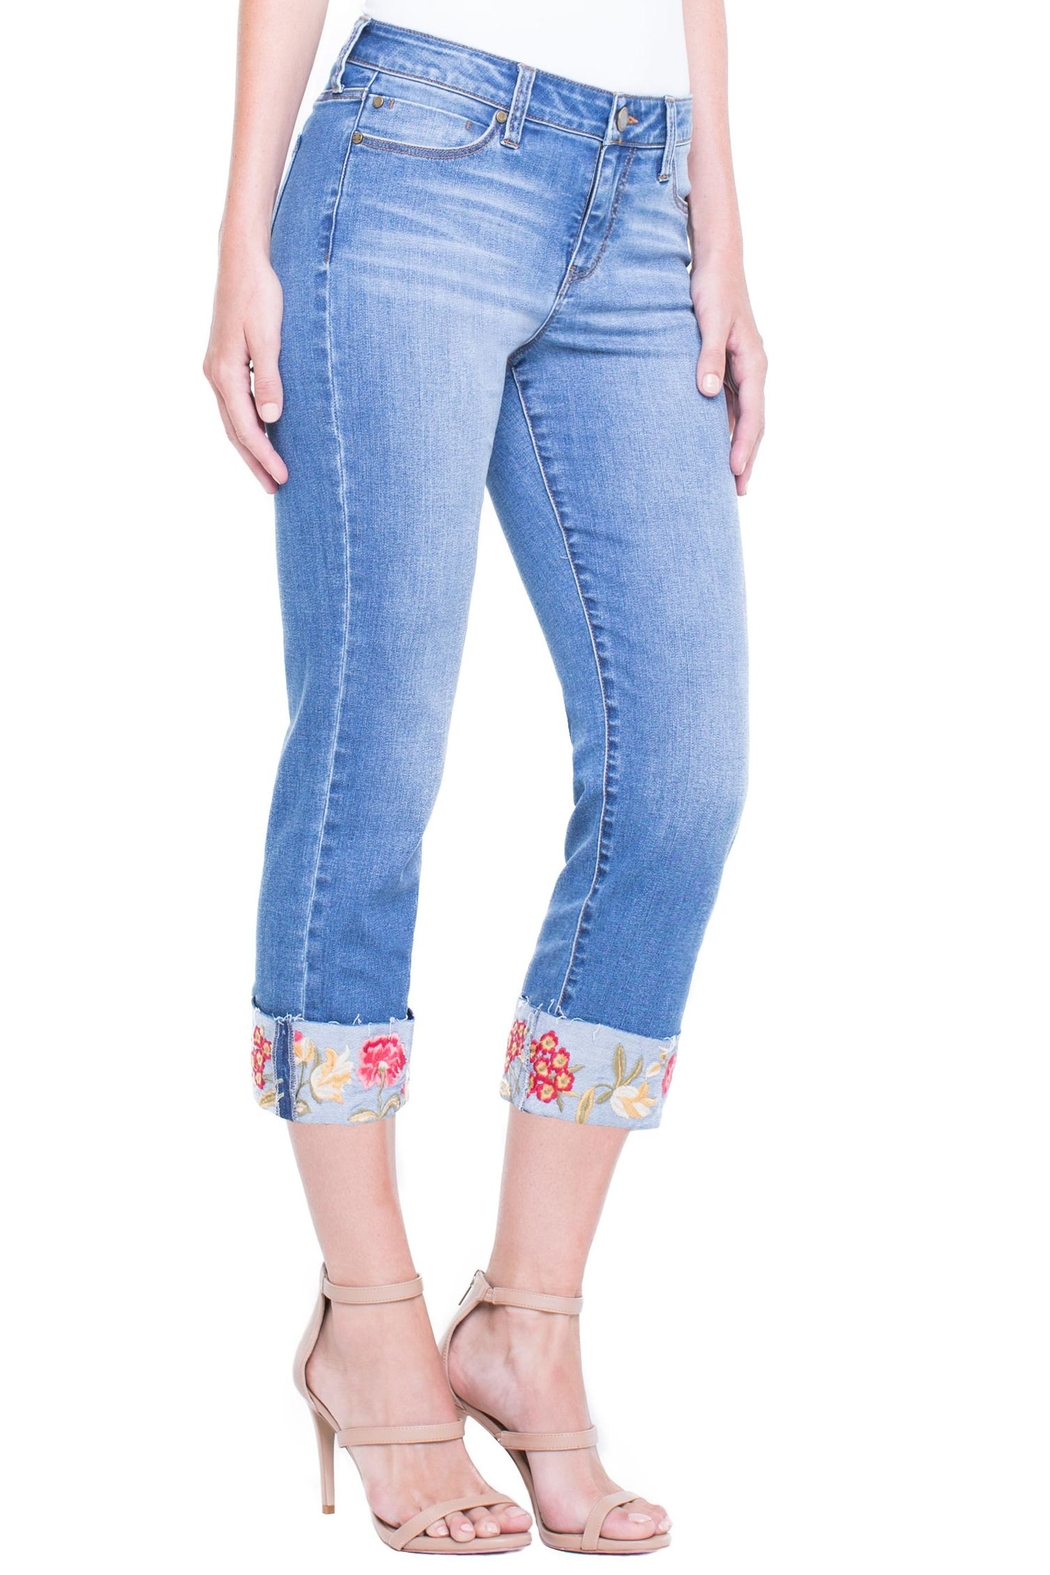 Liverpool Jean Company Floral Cuffed Jeans - Front Full Image